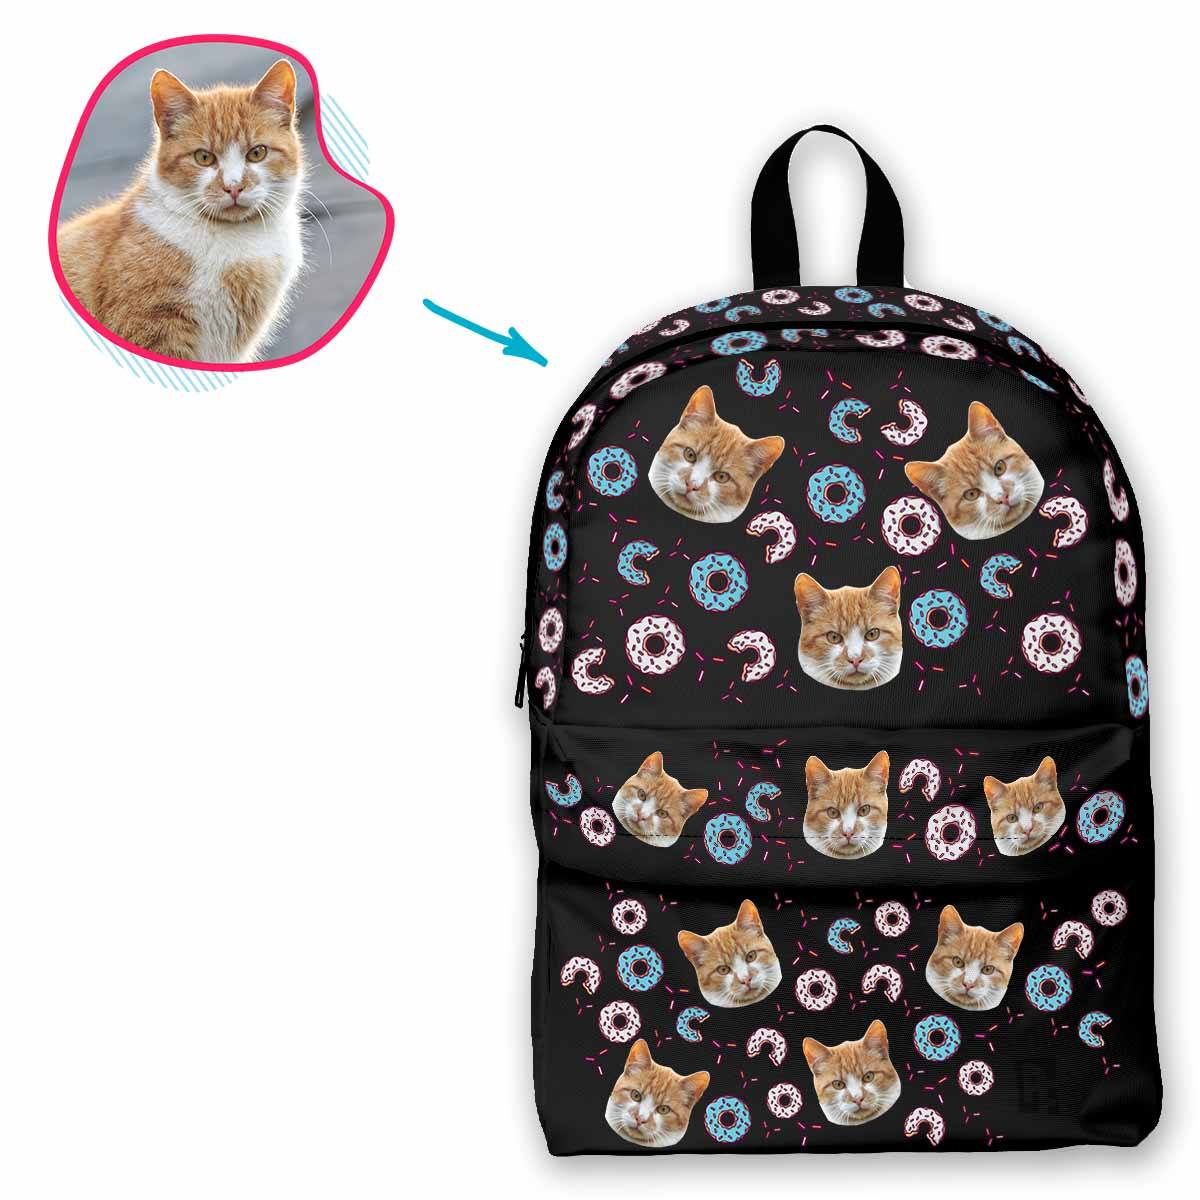 dark Donuts classic backpack personalized with photo of face printed on it